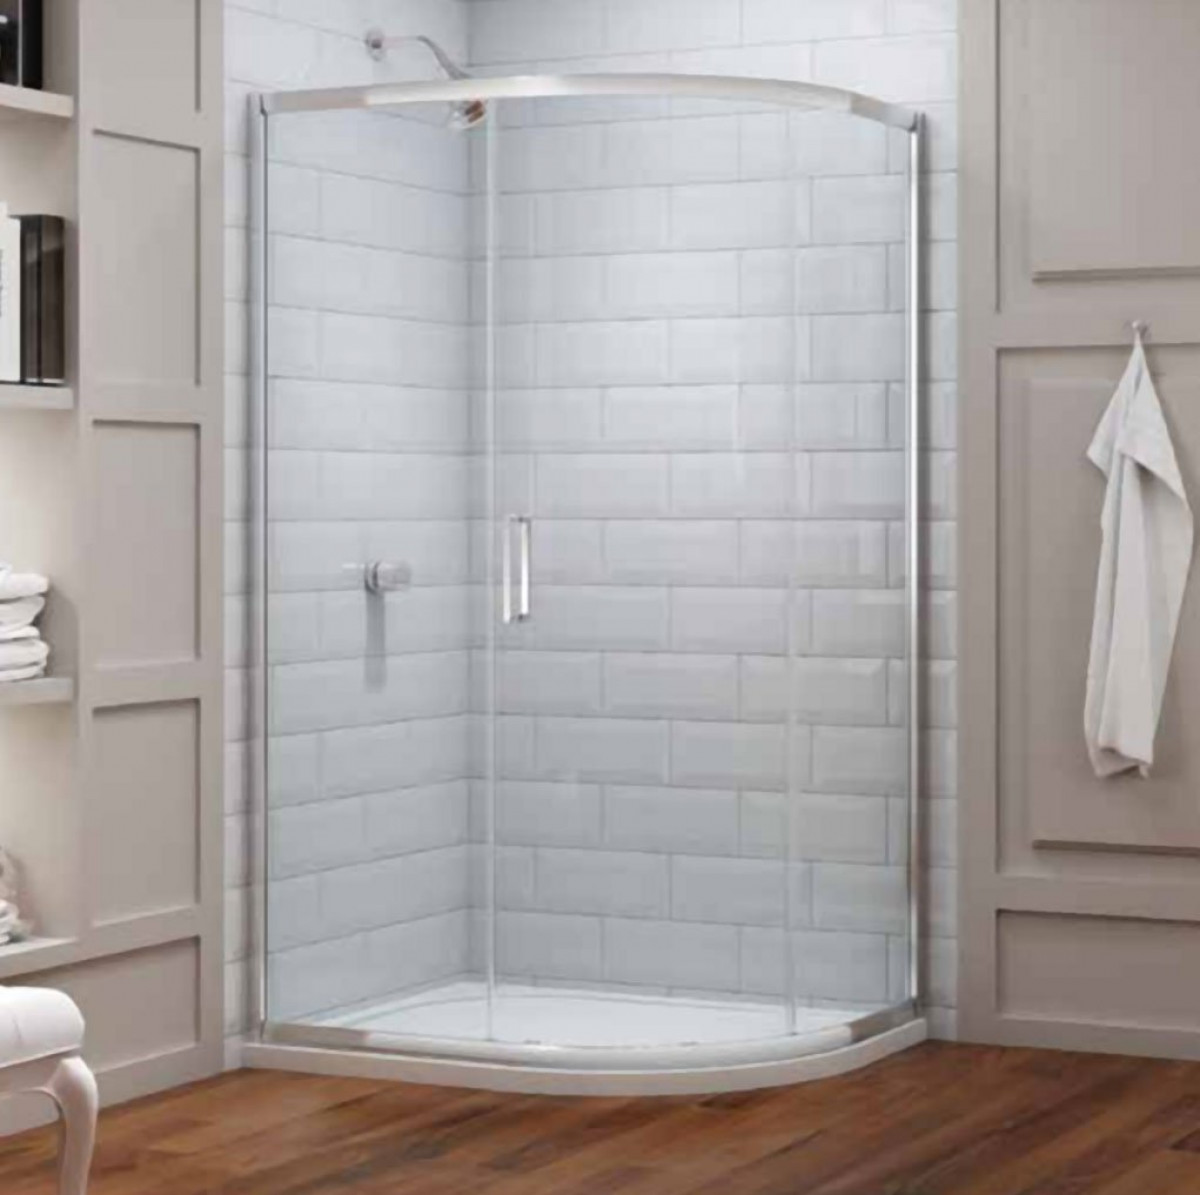 Merlyn 8 Series 900 x 760 1 Door Quadrant Shower Enclosure | M83222 -